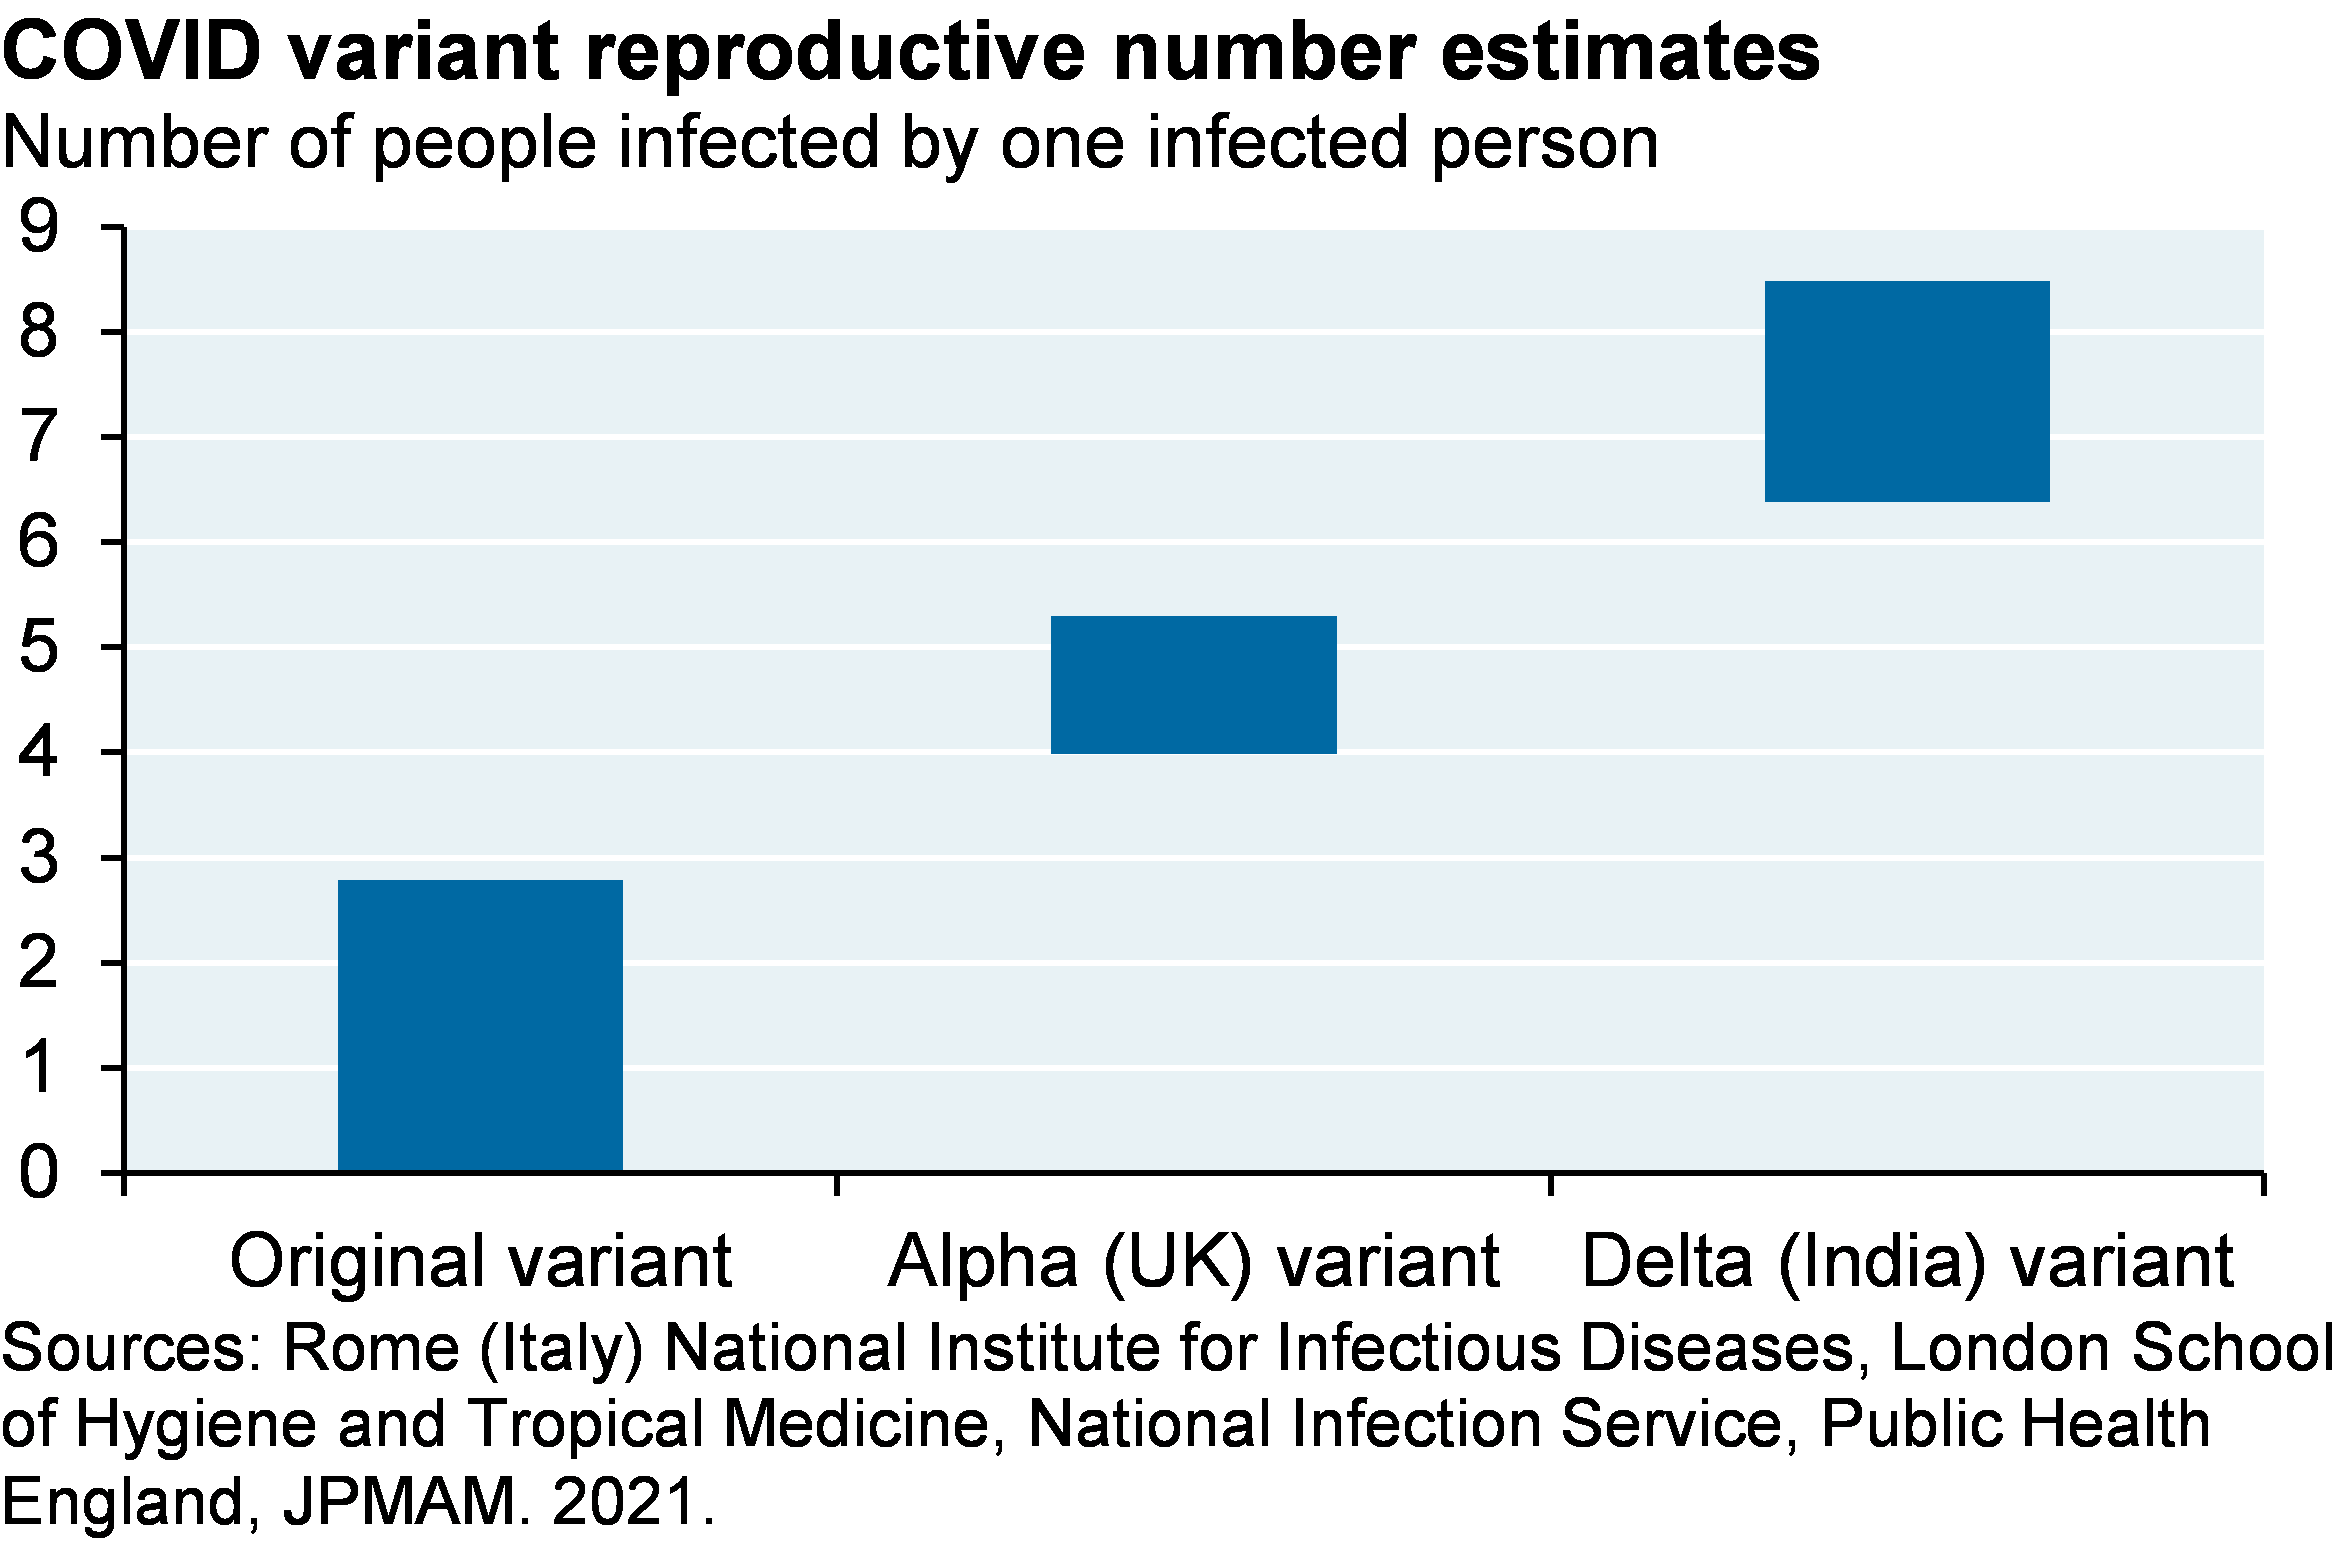 Bar chart which shows COVID reproductive number estimates by variant. The original variant had an estimated reproductive number of 0 to about 3, while estimates for the Alpha and Delta variants are about 4-5 and 6-8.5.